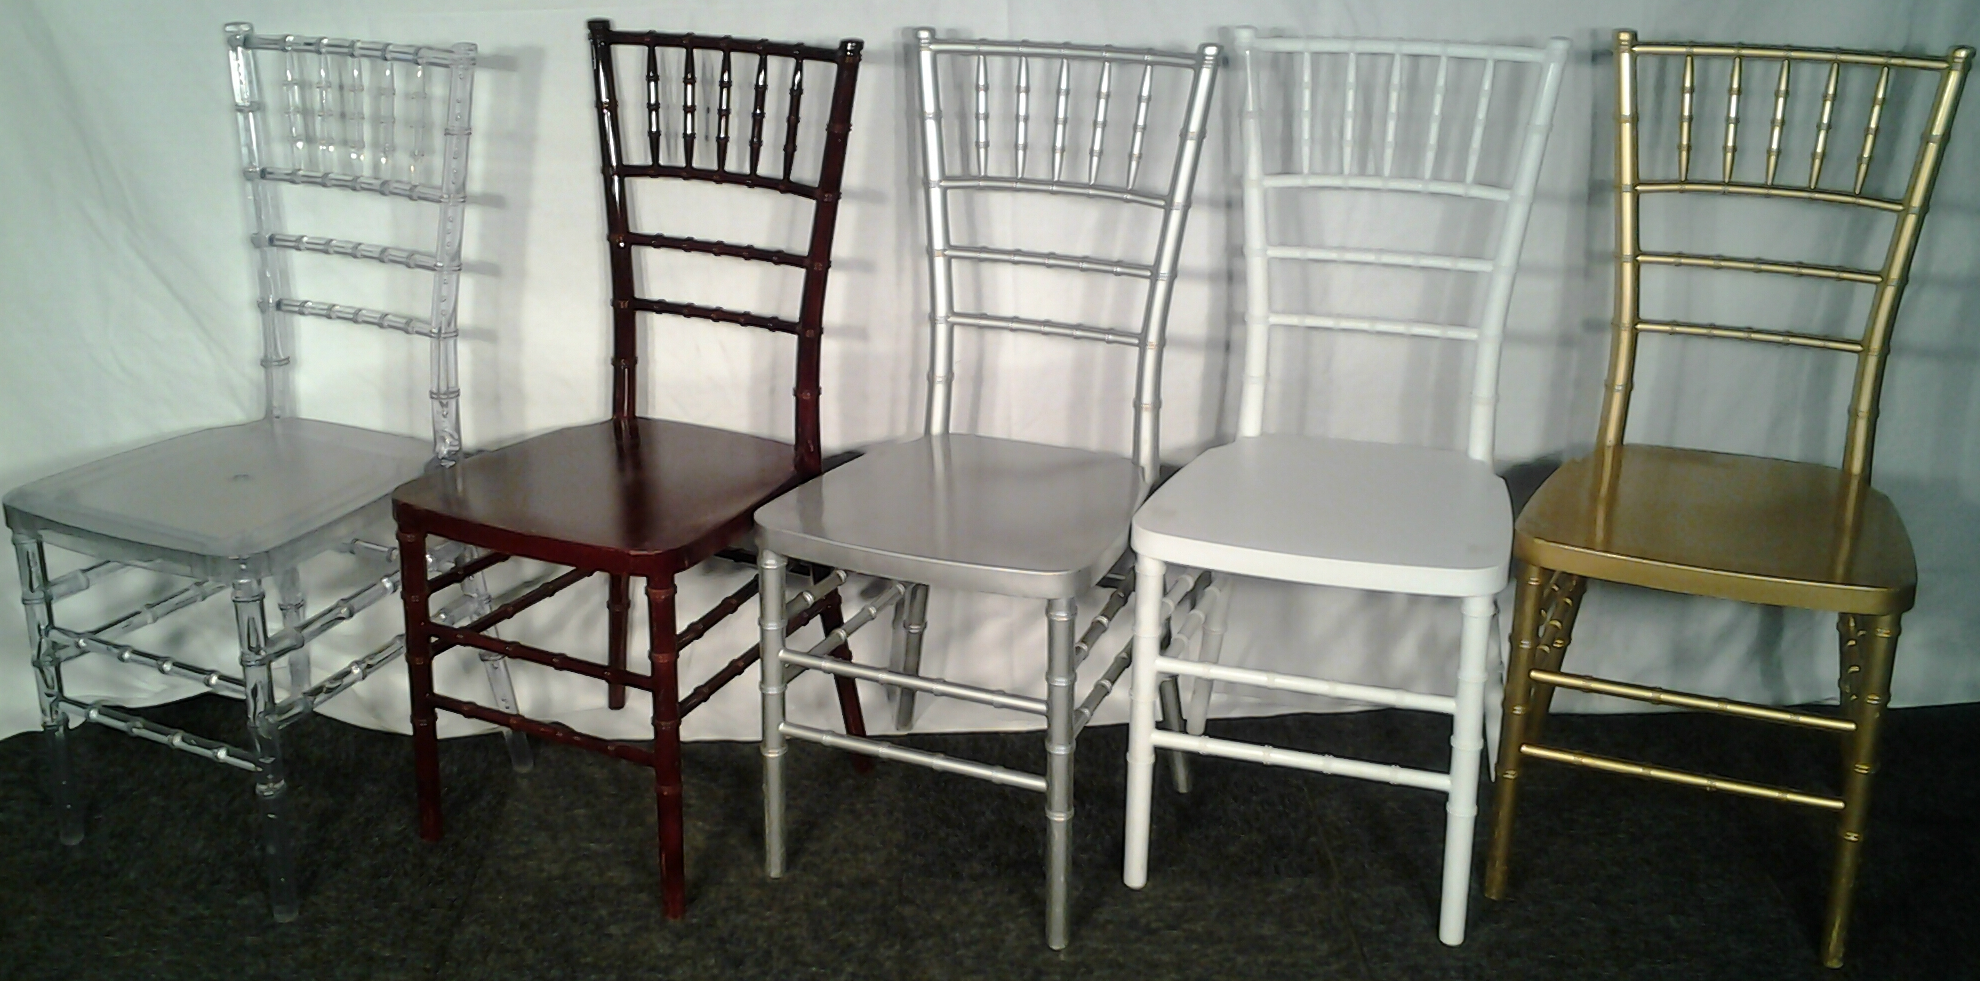 tiffany chairs clear burgundy silver white gold mpr hiring